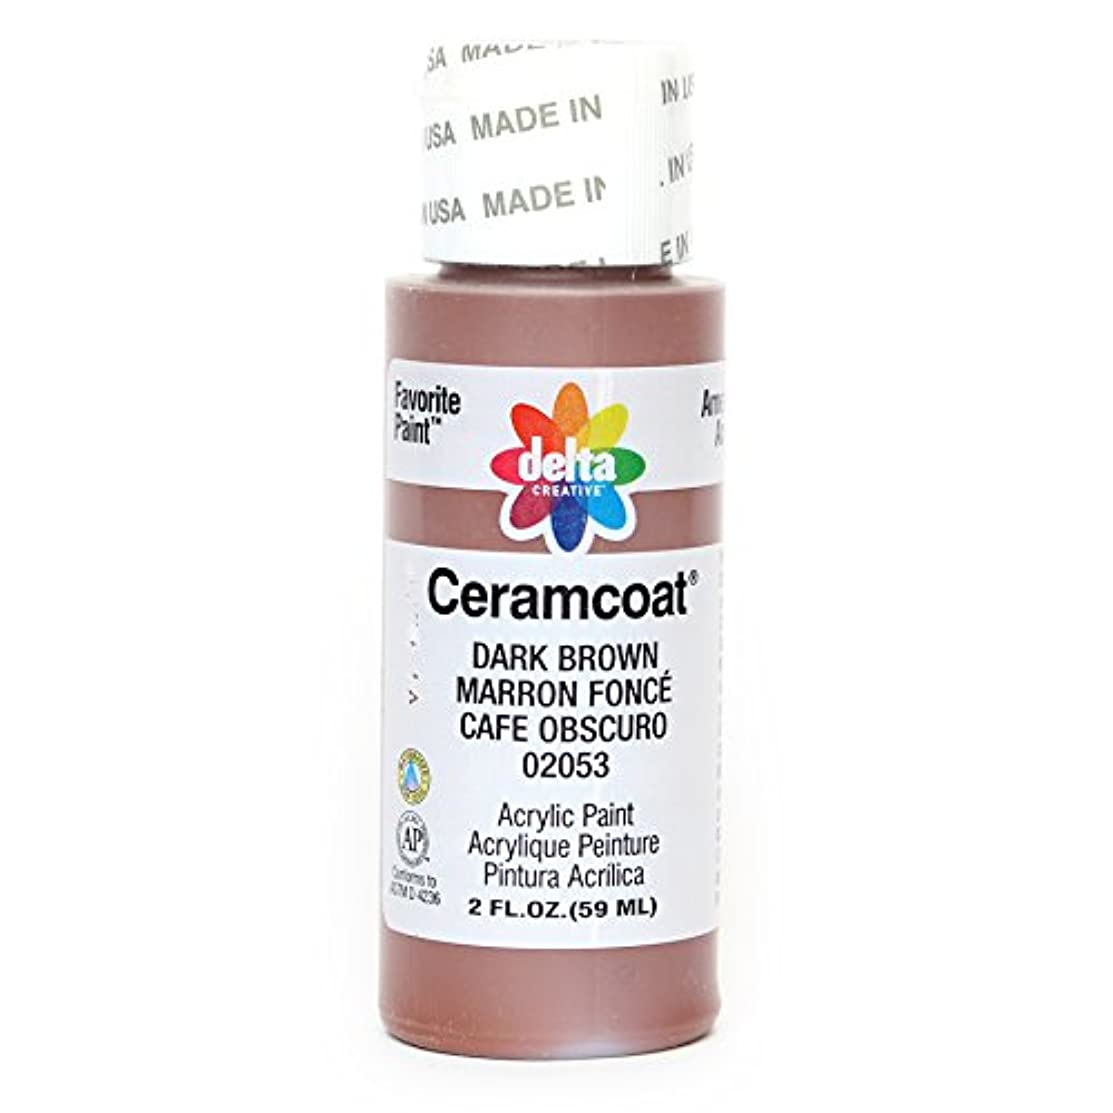 Delta Creative Ceramcoat Acrylic Paint in Assorted Colors (2 oz), 2053, Dark Brown